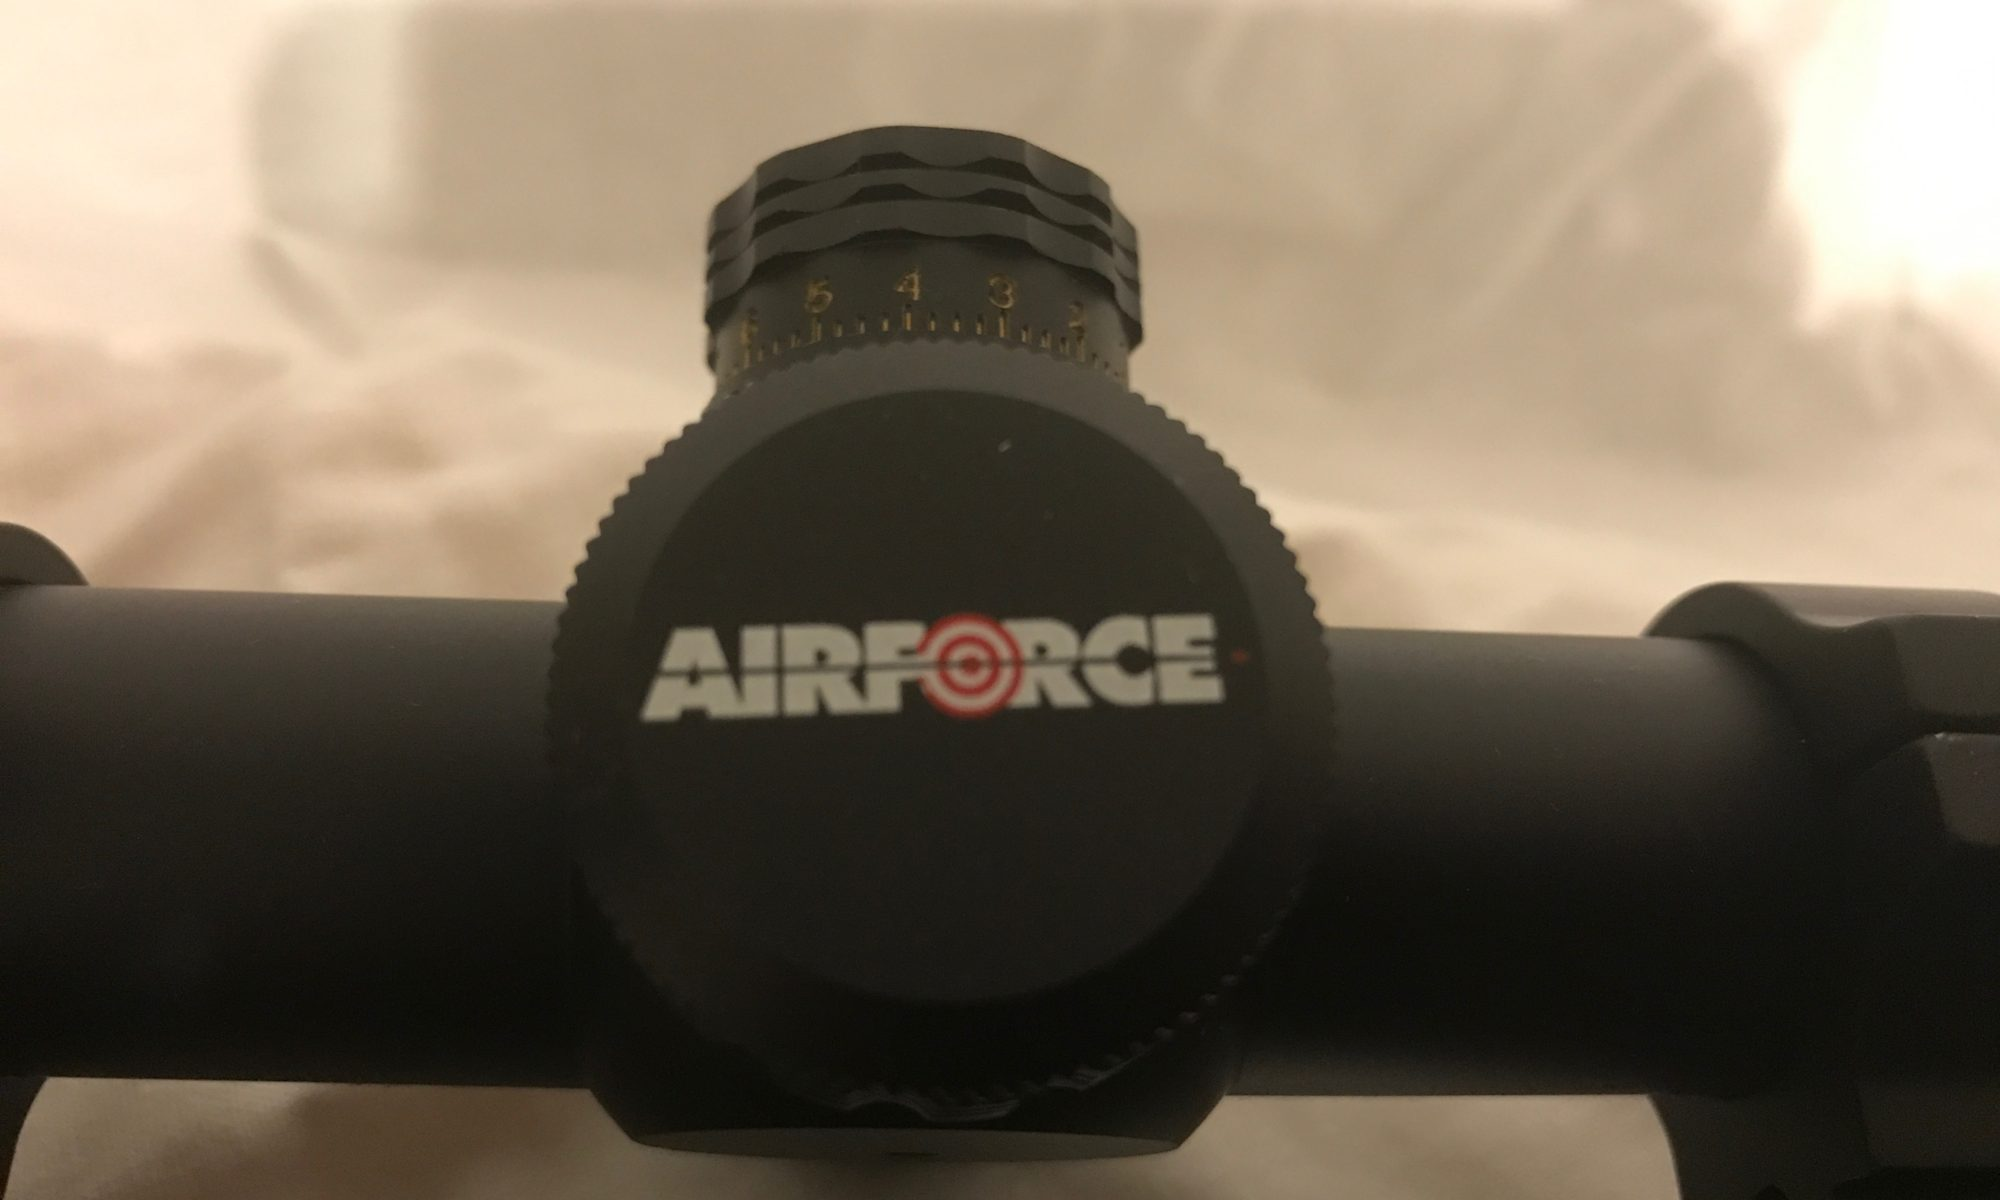 air force air guns review from kenn blanchard